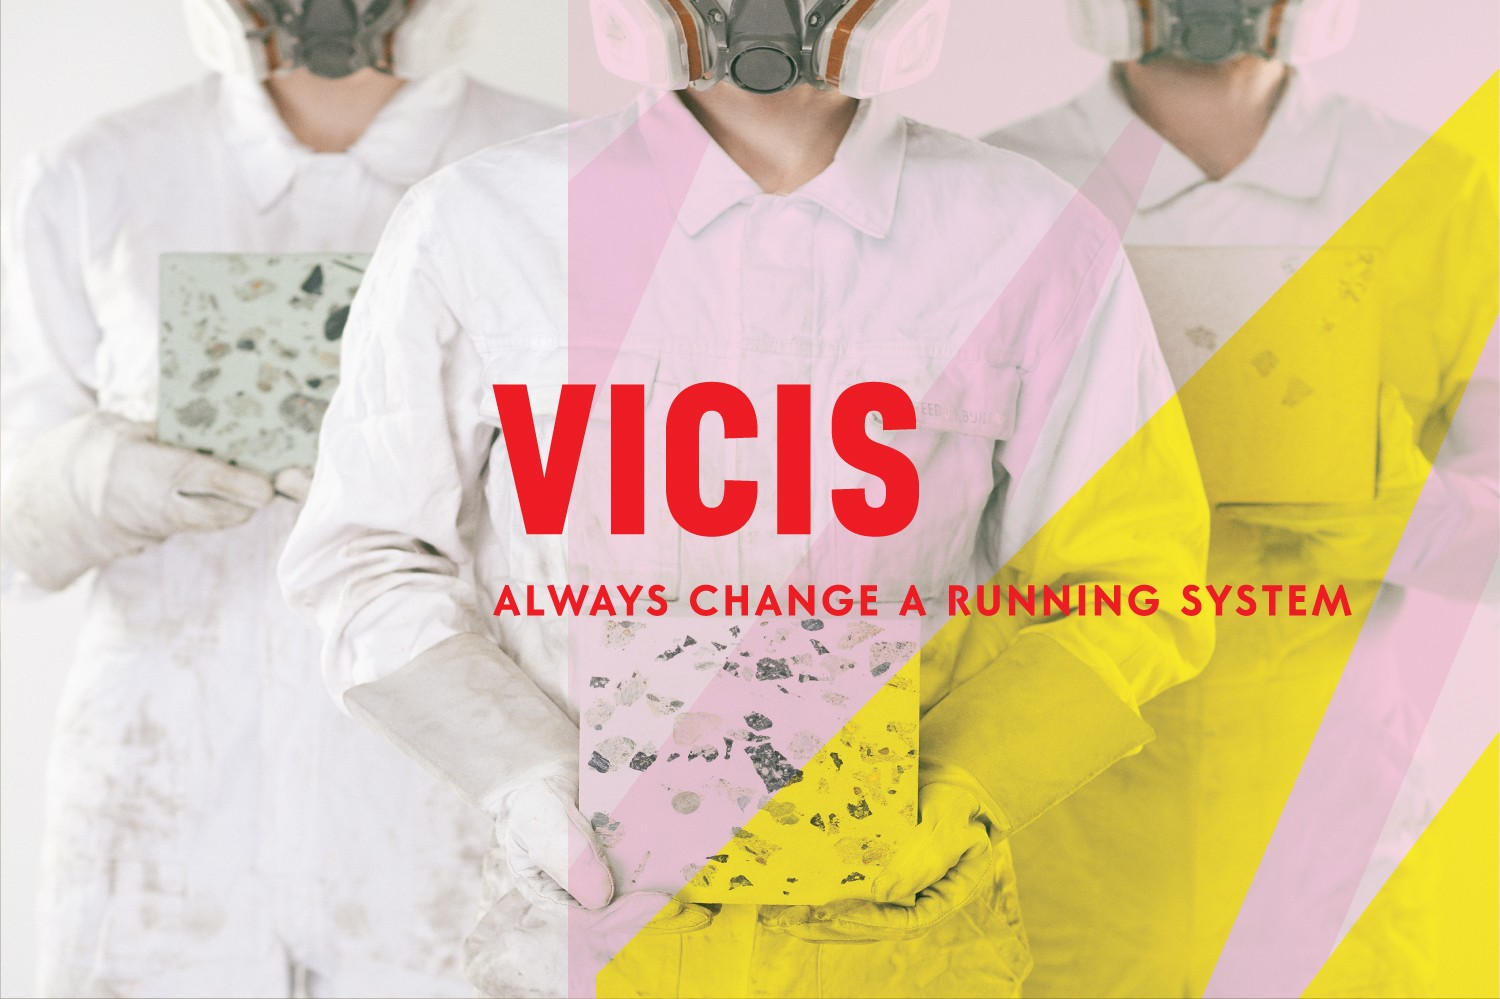 VICIS // ALWAYS CANGE A RUNNING SYSTEM